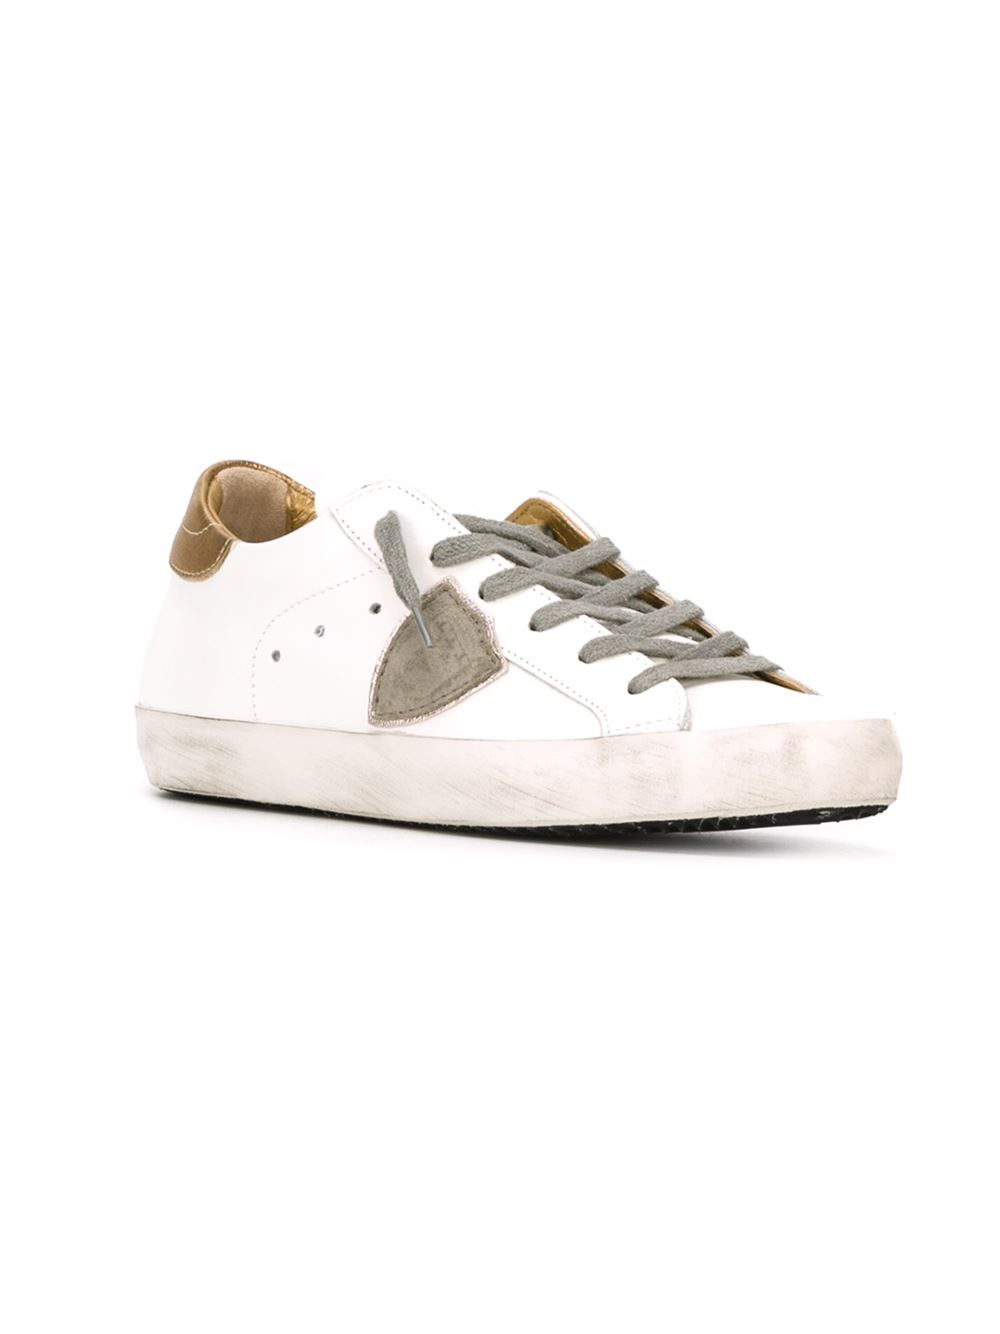 philippe model logo patch sneakers in white lyst. Black Bedroom Furniture Sets. Home Design Ideas